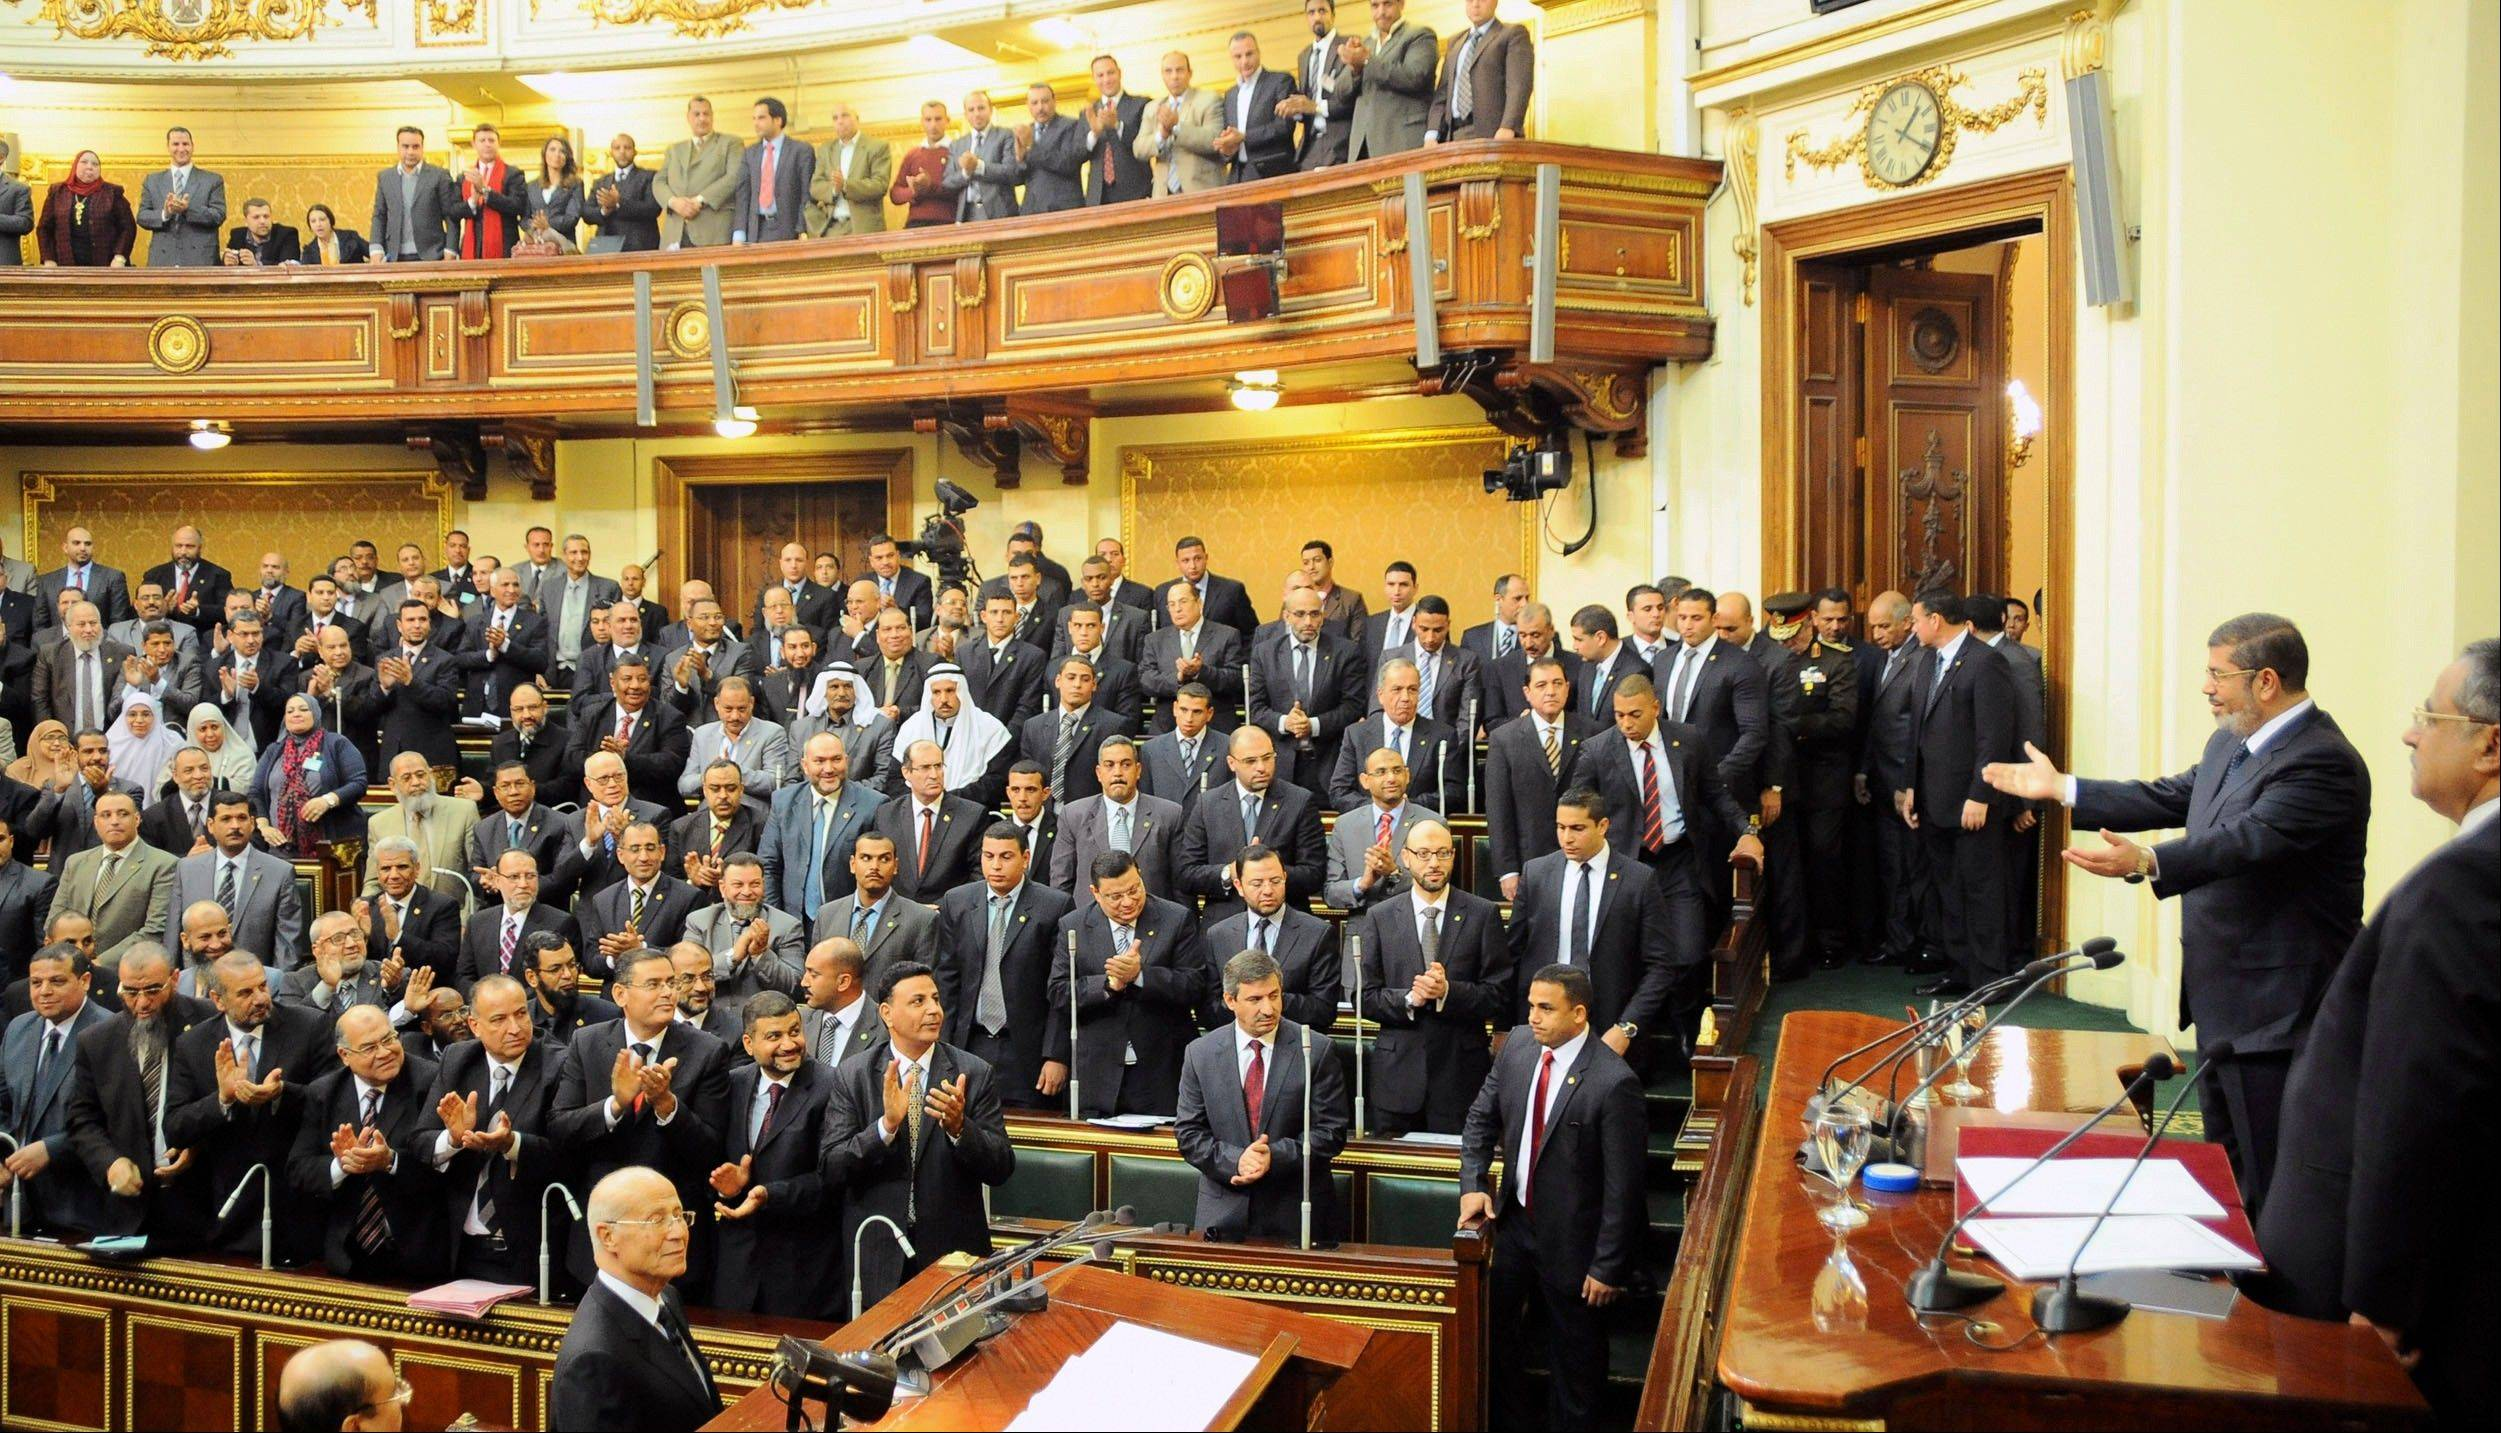 Mohammed Morsi addresses the newly convened upper house of parliament in Cairo, Egypt, Saturday, Dec. 29. Egypt�s Islamist president warned against any unrest that could harm the drive to repair the country�s battered economy in his first address before the newly convened upper house of parliament, urging the opposition to work with his government.